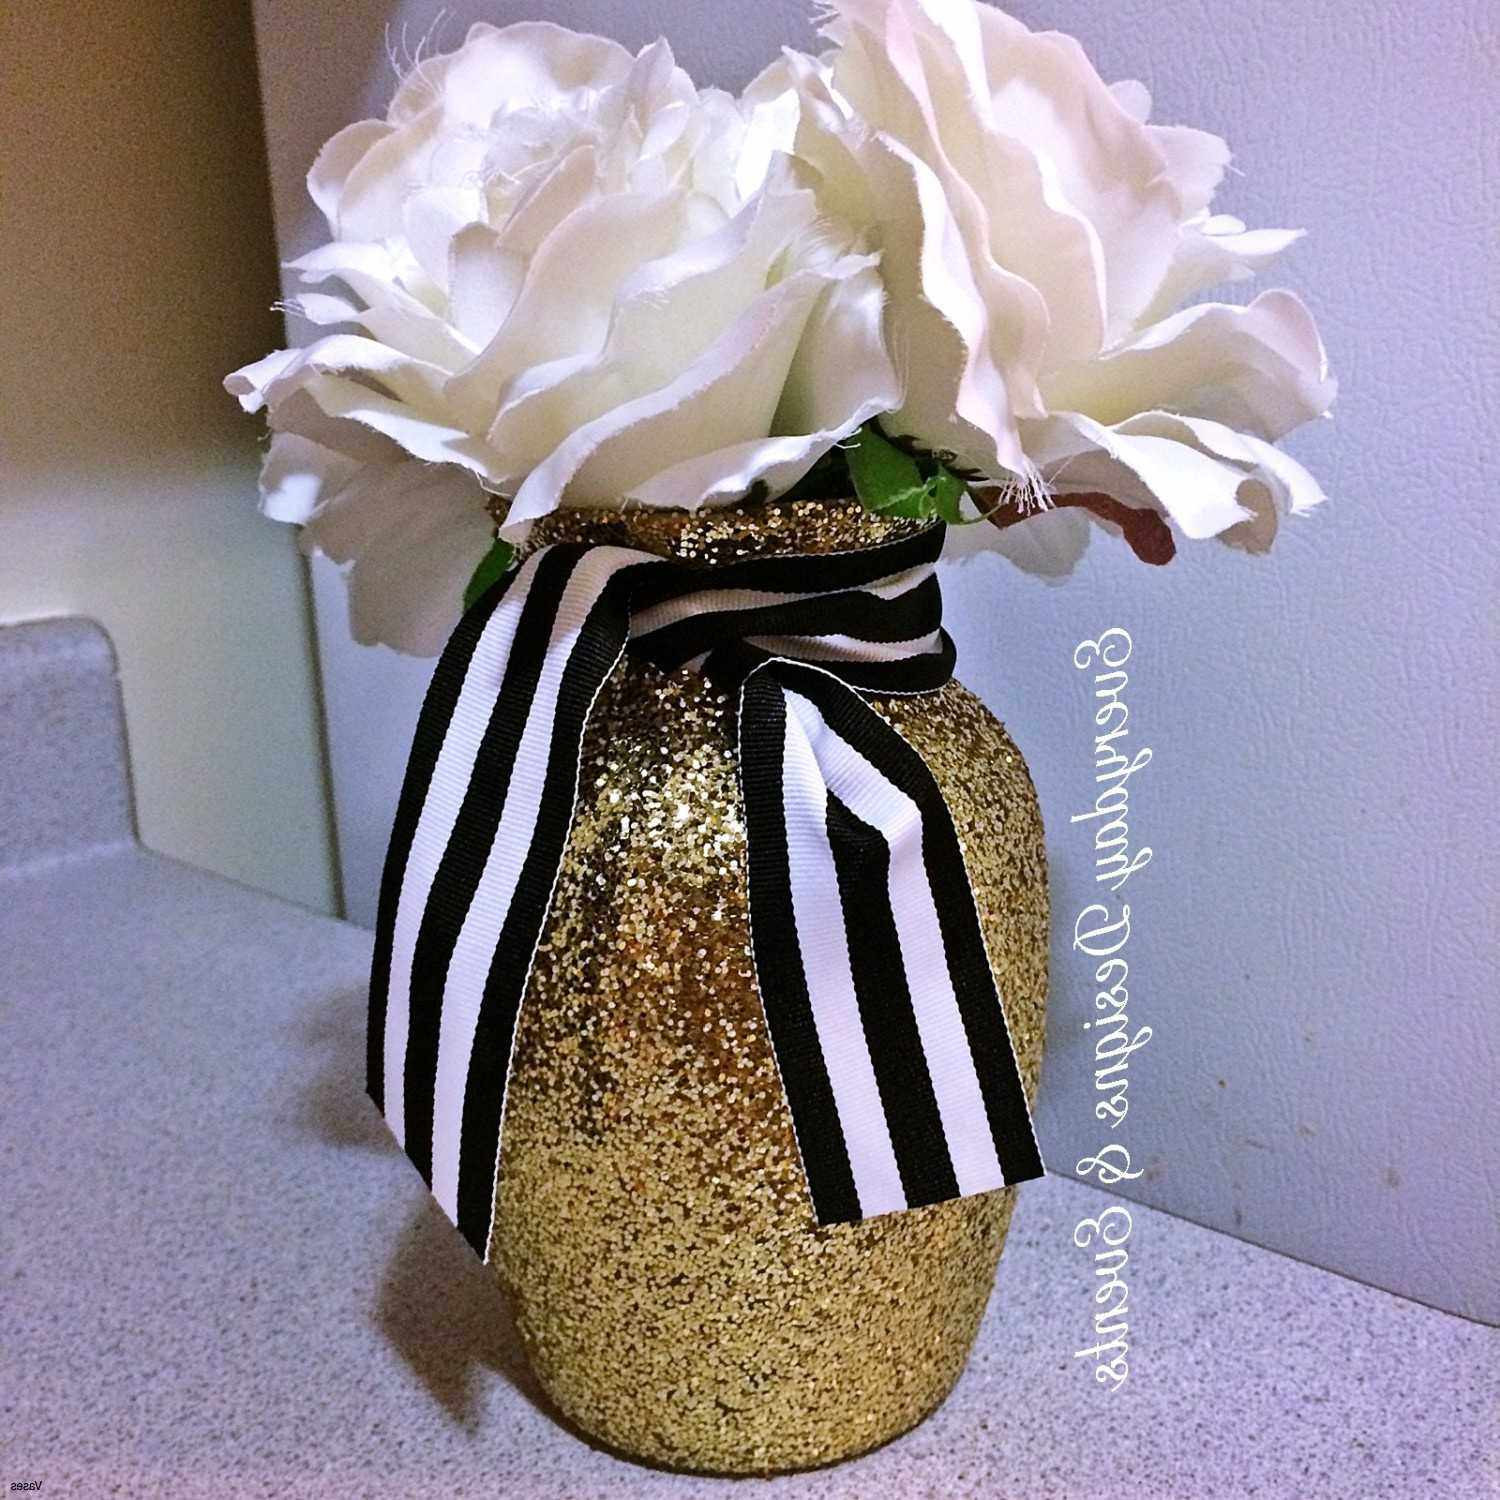 Gold Glitter Vase Of 60 Best Of Black and Gold Flowers A Anna Wedding Throughout Black and Gold Flowers New Vases Baby Shower Flower Tutu Vase Centerpiece for A I 0d Of